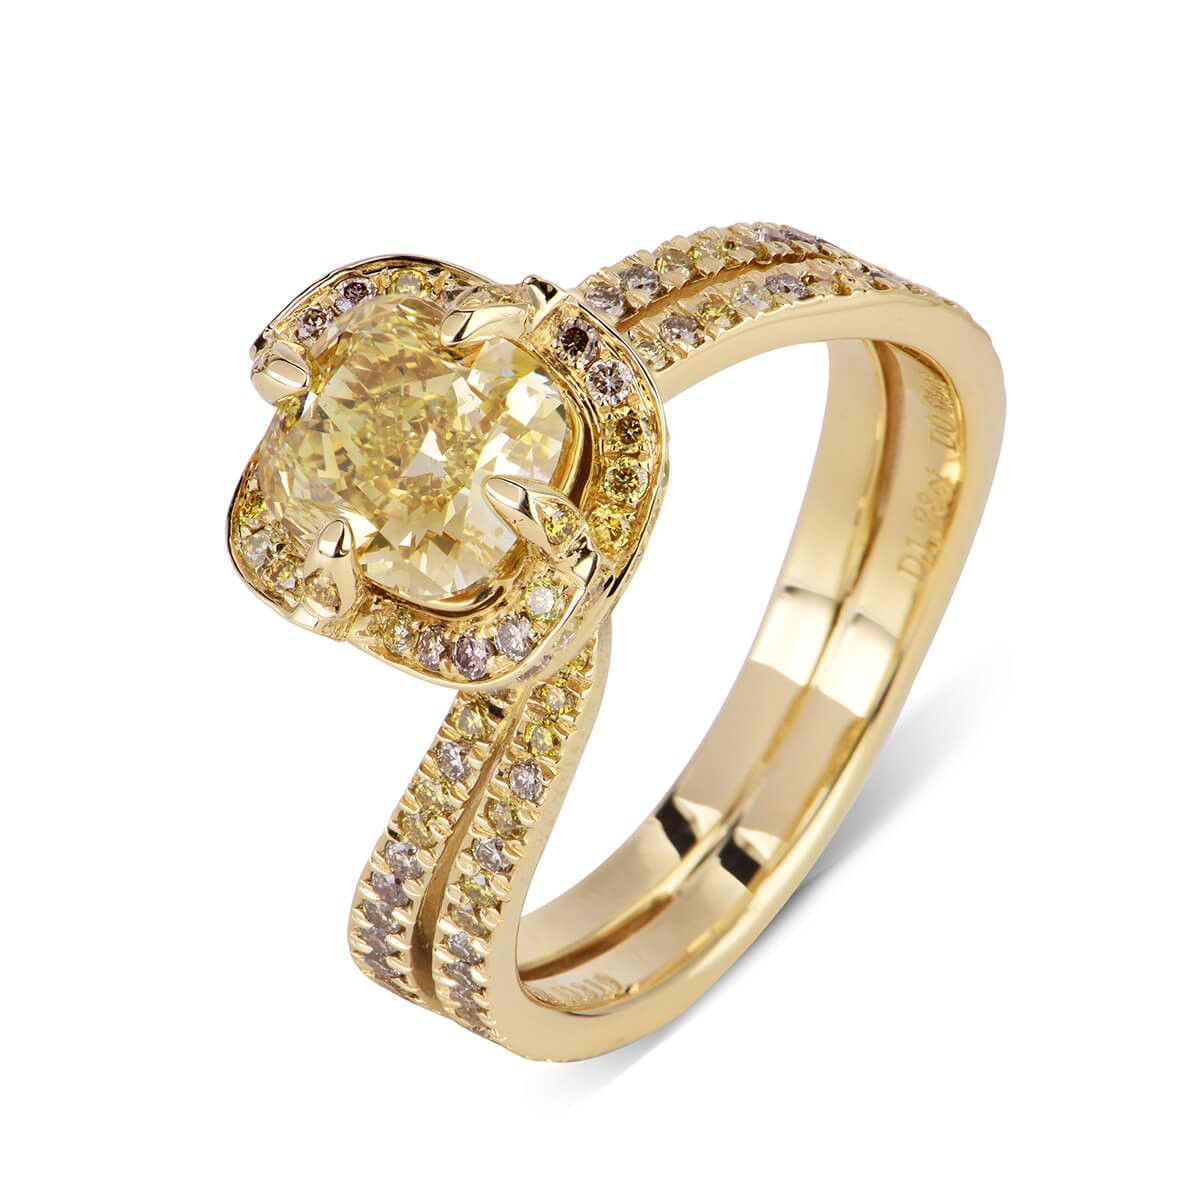 gia cushion diamond index b pink brownish dark yellow jewelry diamonds color ring complex cut halfmoon fancy brown